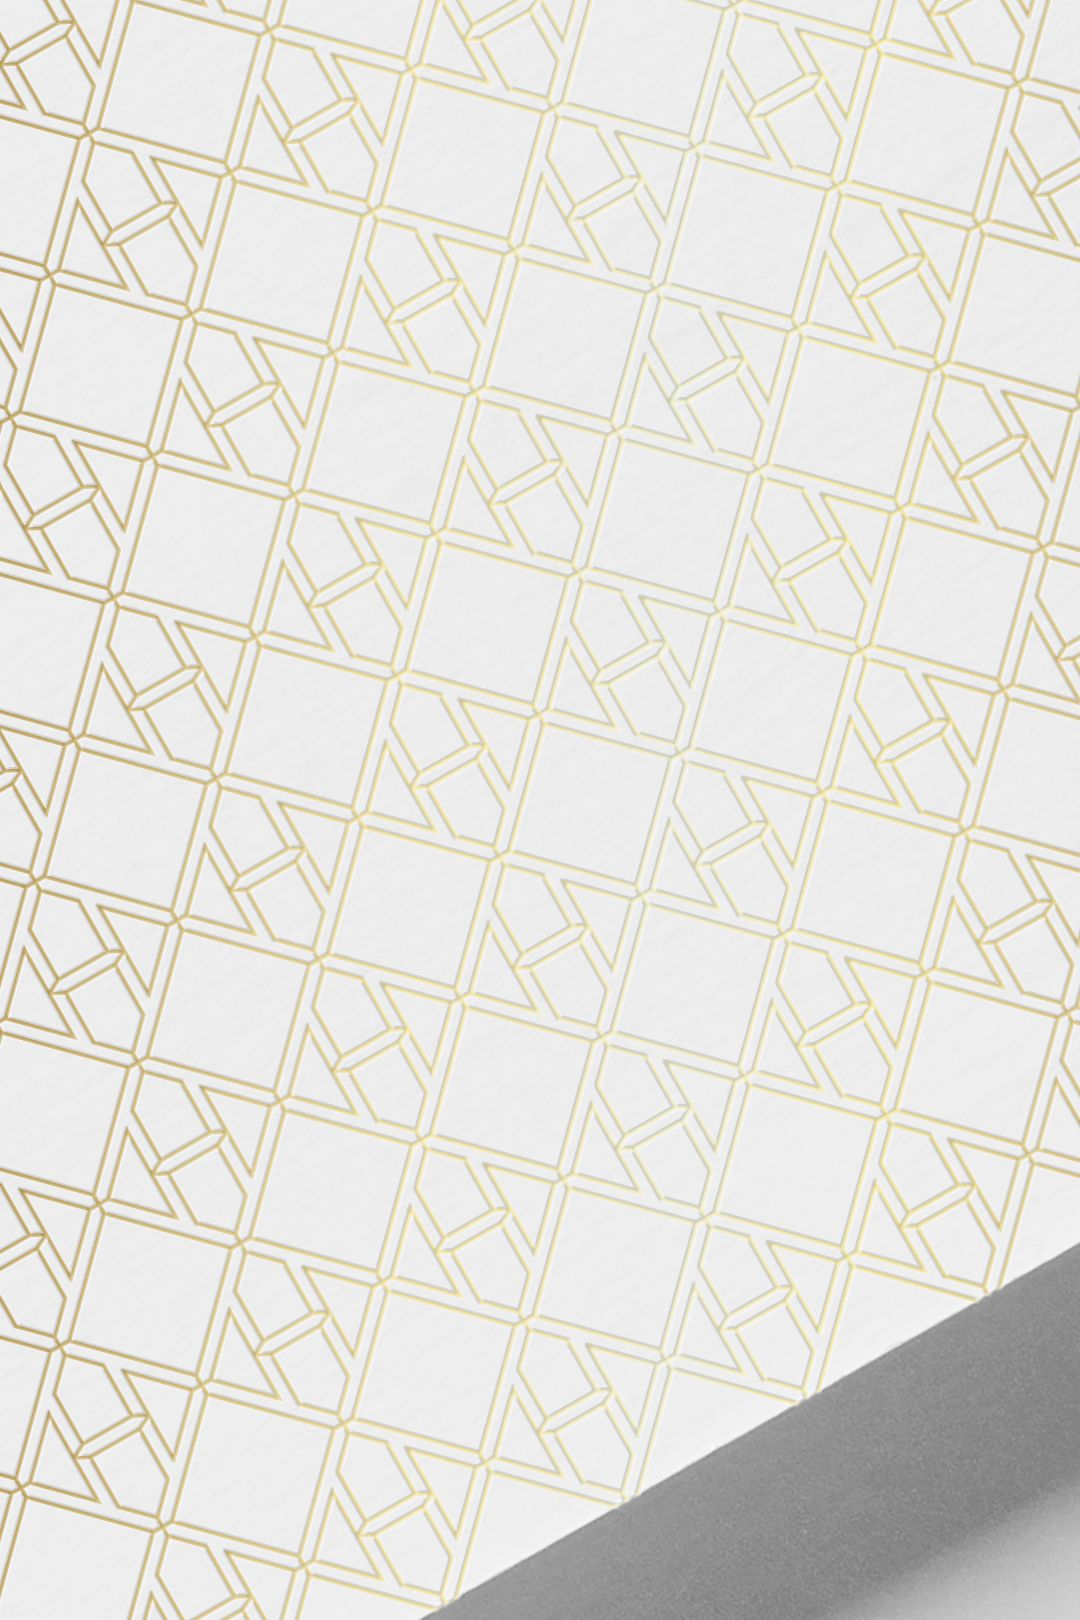 Hennessy H pattern applied in gold foil to paper